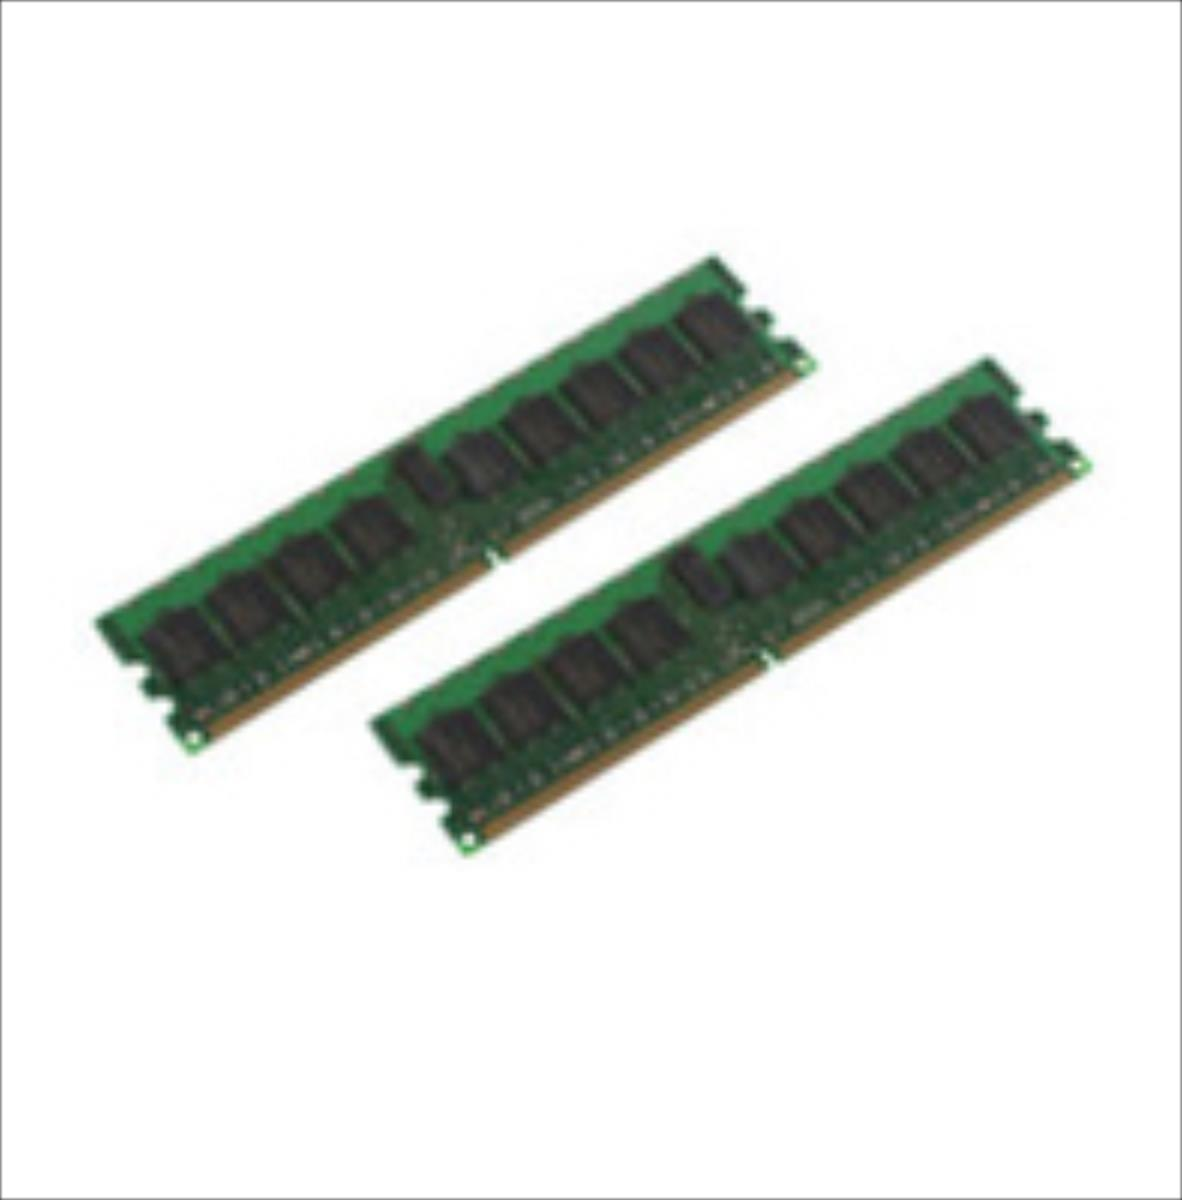 MicroMemory 8GB KIT DDR2 667MHZ ECC/REG KIT OF 2x 4GB DIMM MMI0348/8GB, KTM2759K2/8G, 41Y2767 (2PCS), 41Y2768, FRU 40T7980 MMI0348/8GB